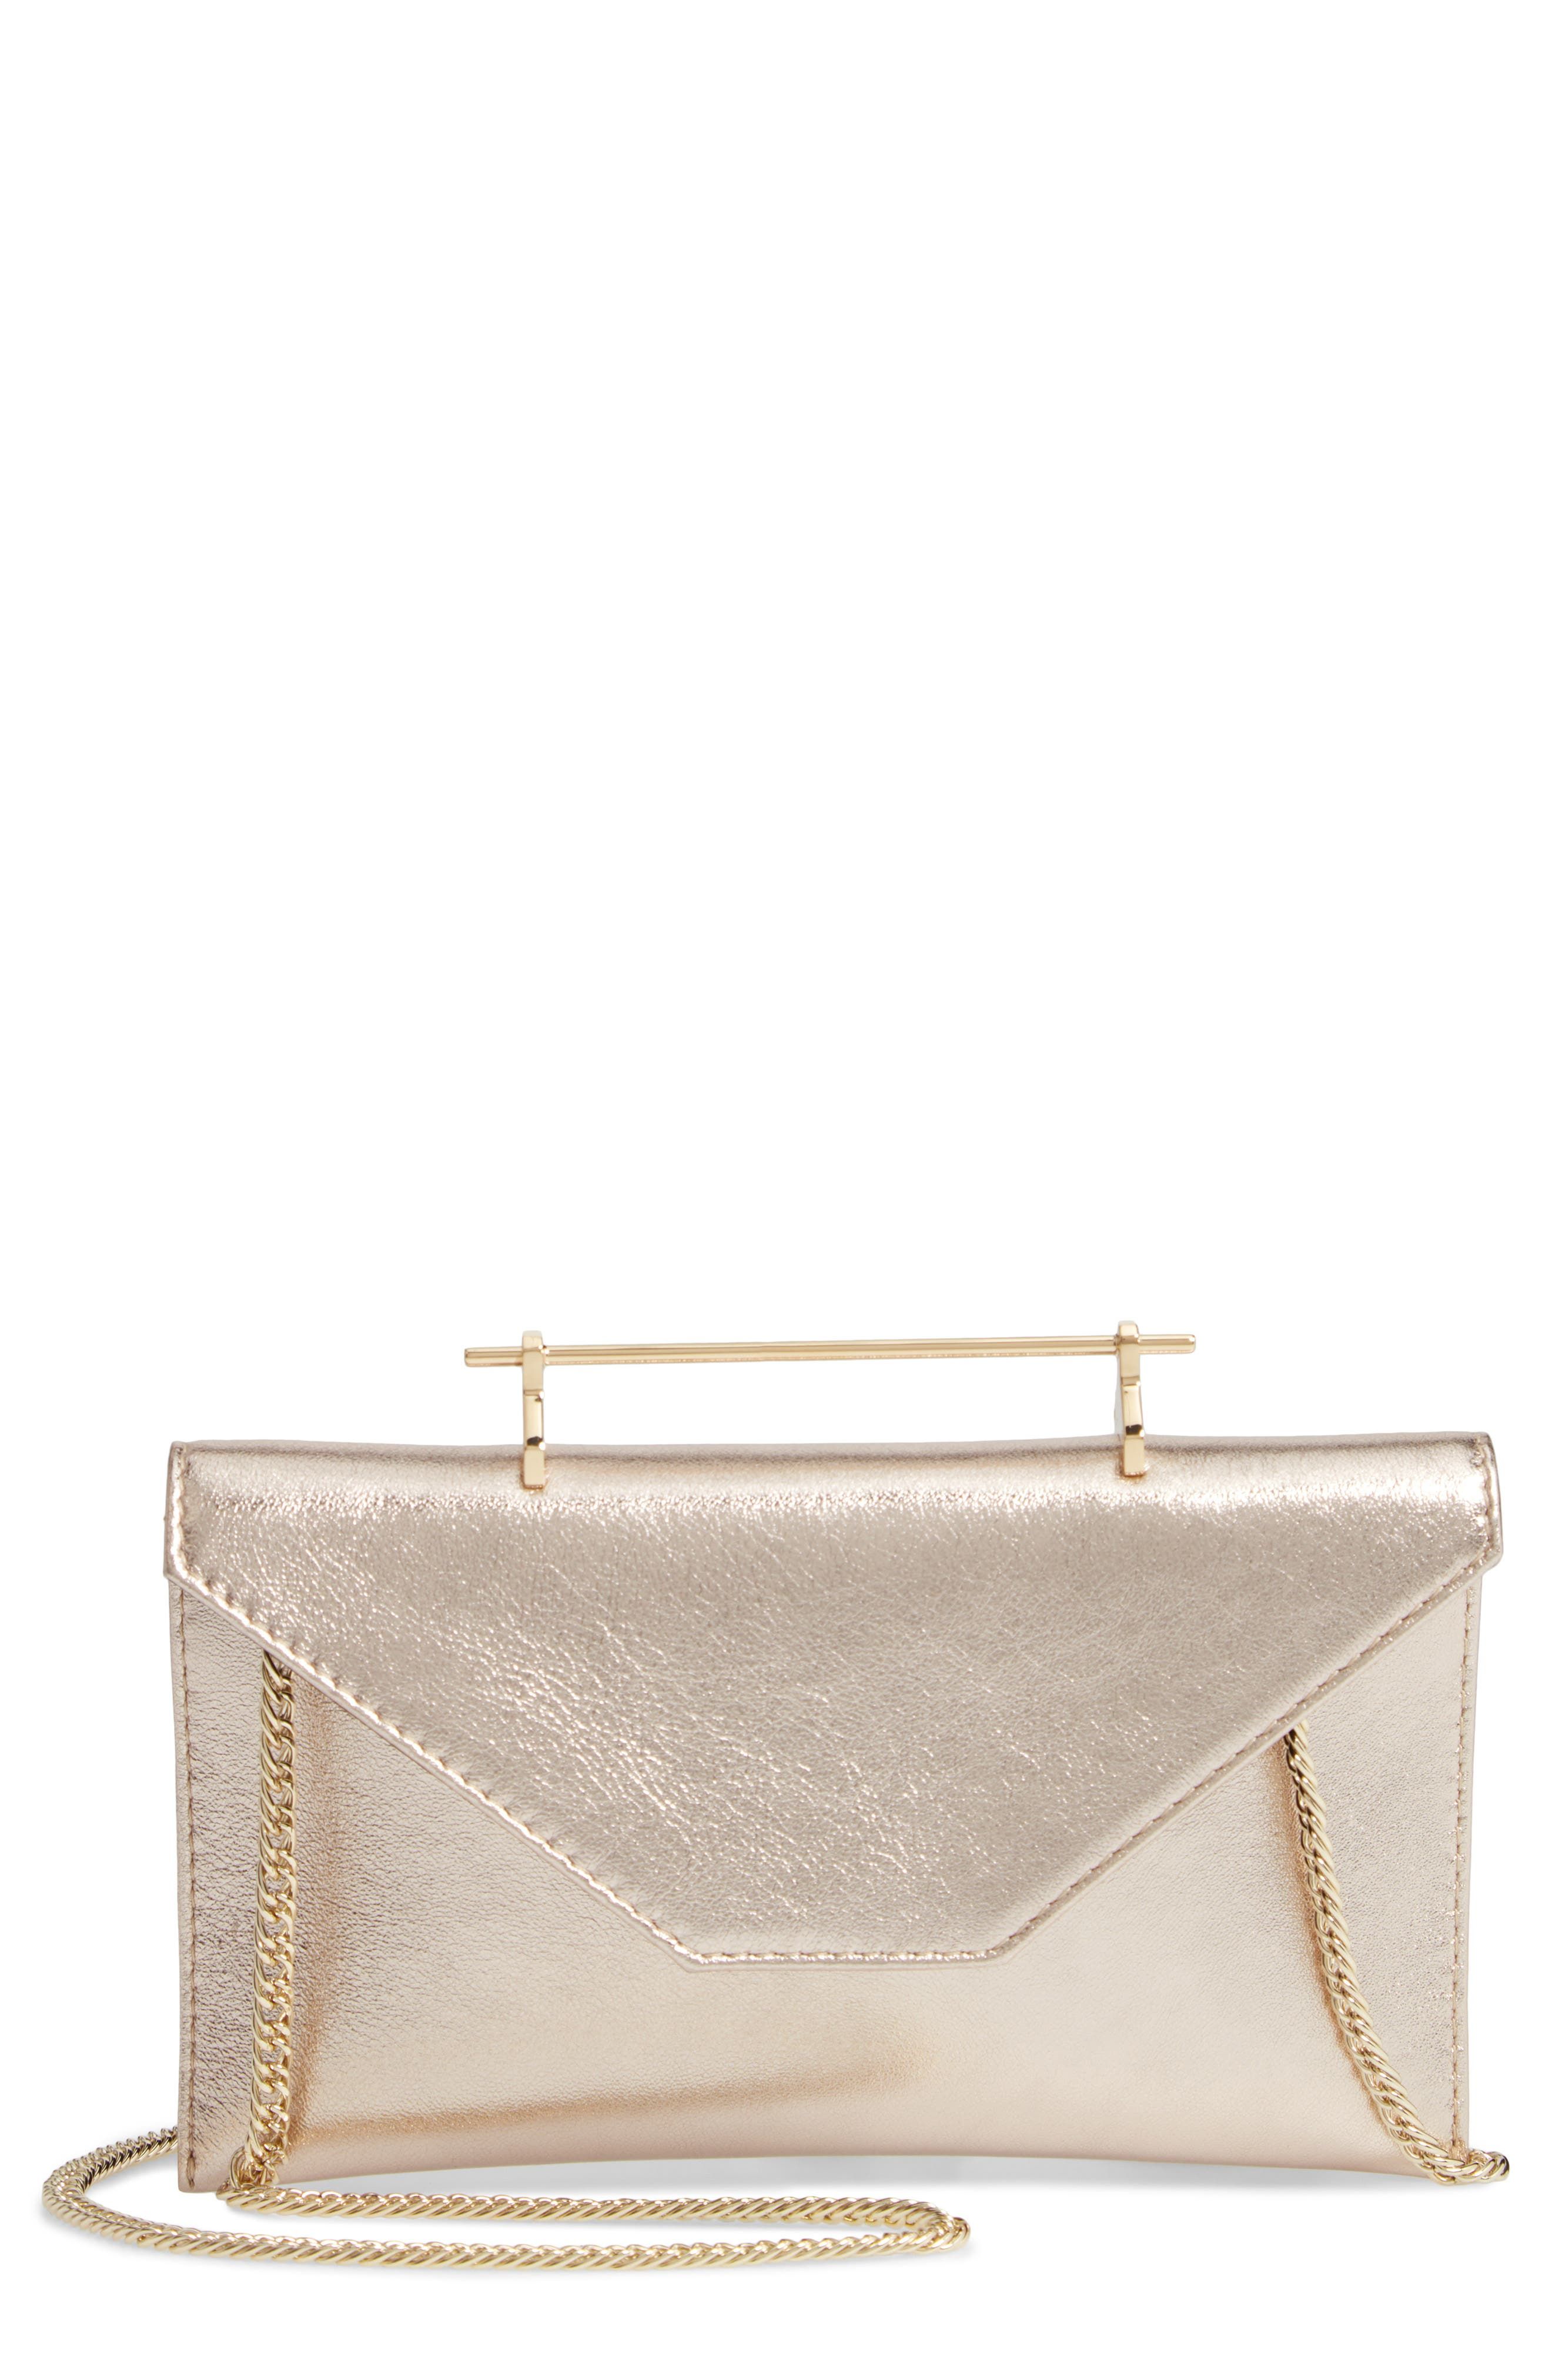 Annabelle Metallic Calfskin Leather Clutch,                         Main,                         color, METALLIC GOLD/ GOLD